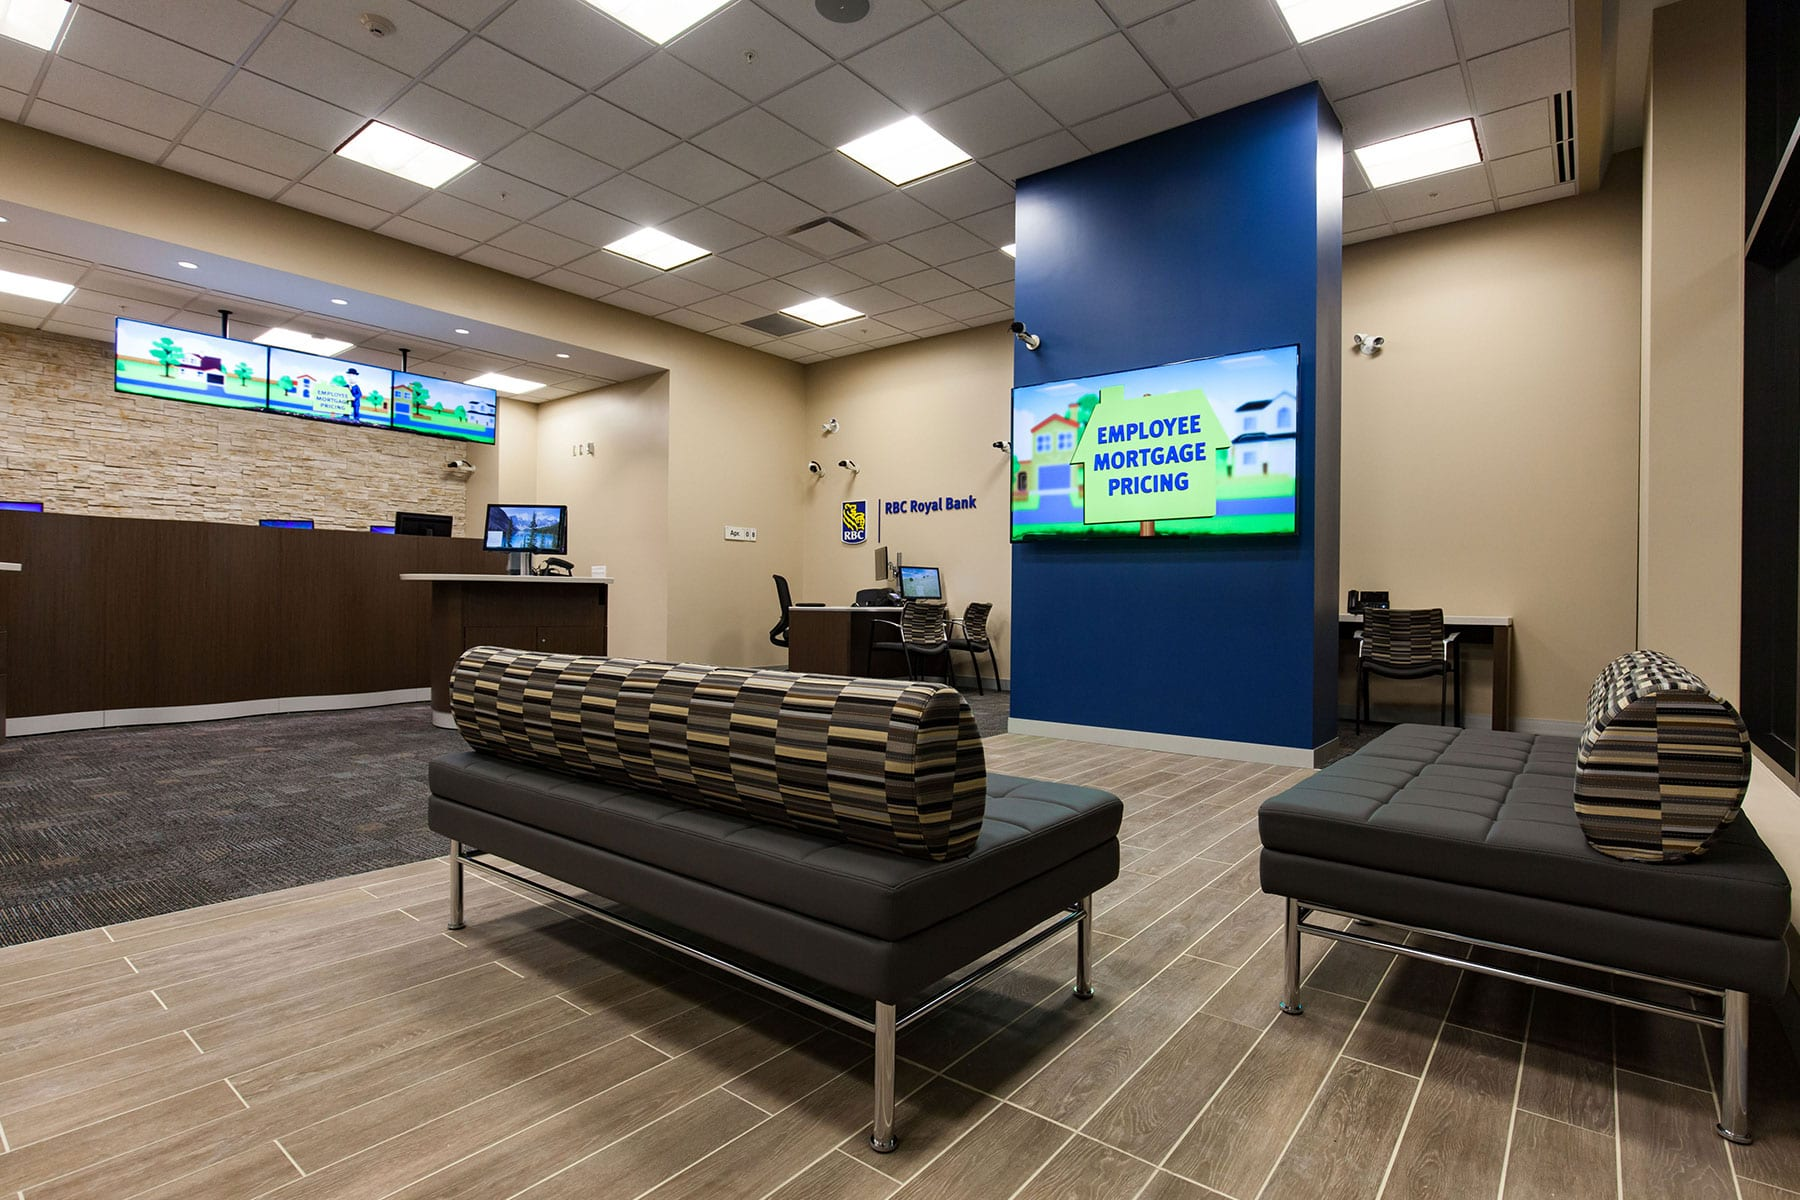 Commercial fit out project of RBC Royal Bank with bright and welcoming space with ATM in the entry and welcome desks